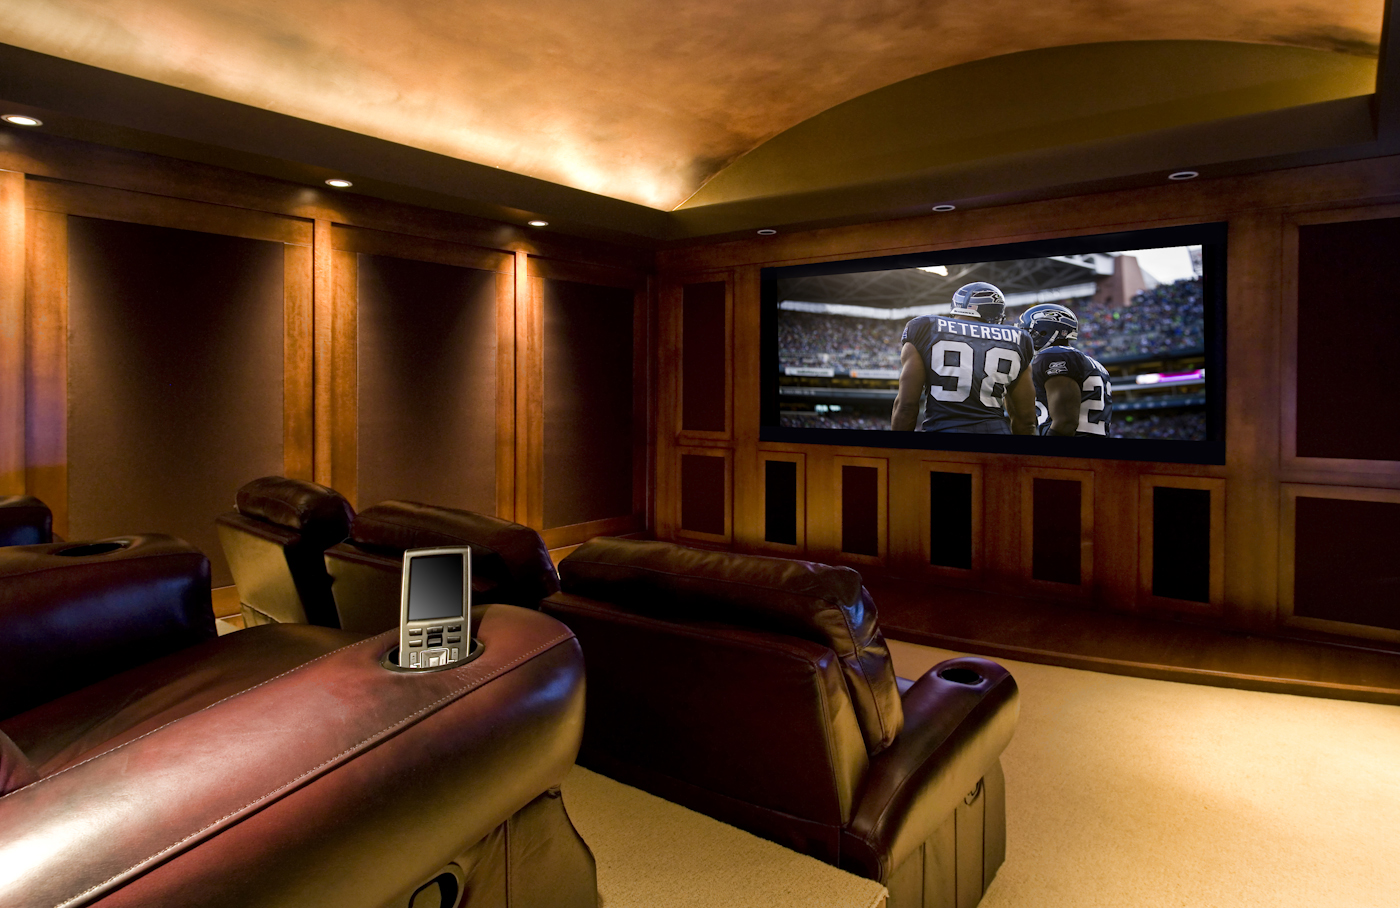 coolest media rooms, best ideas for a man cave, garrison hullinger interior design